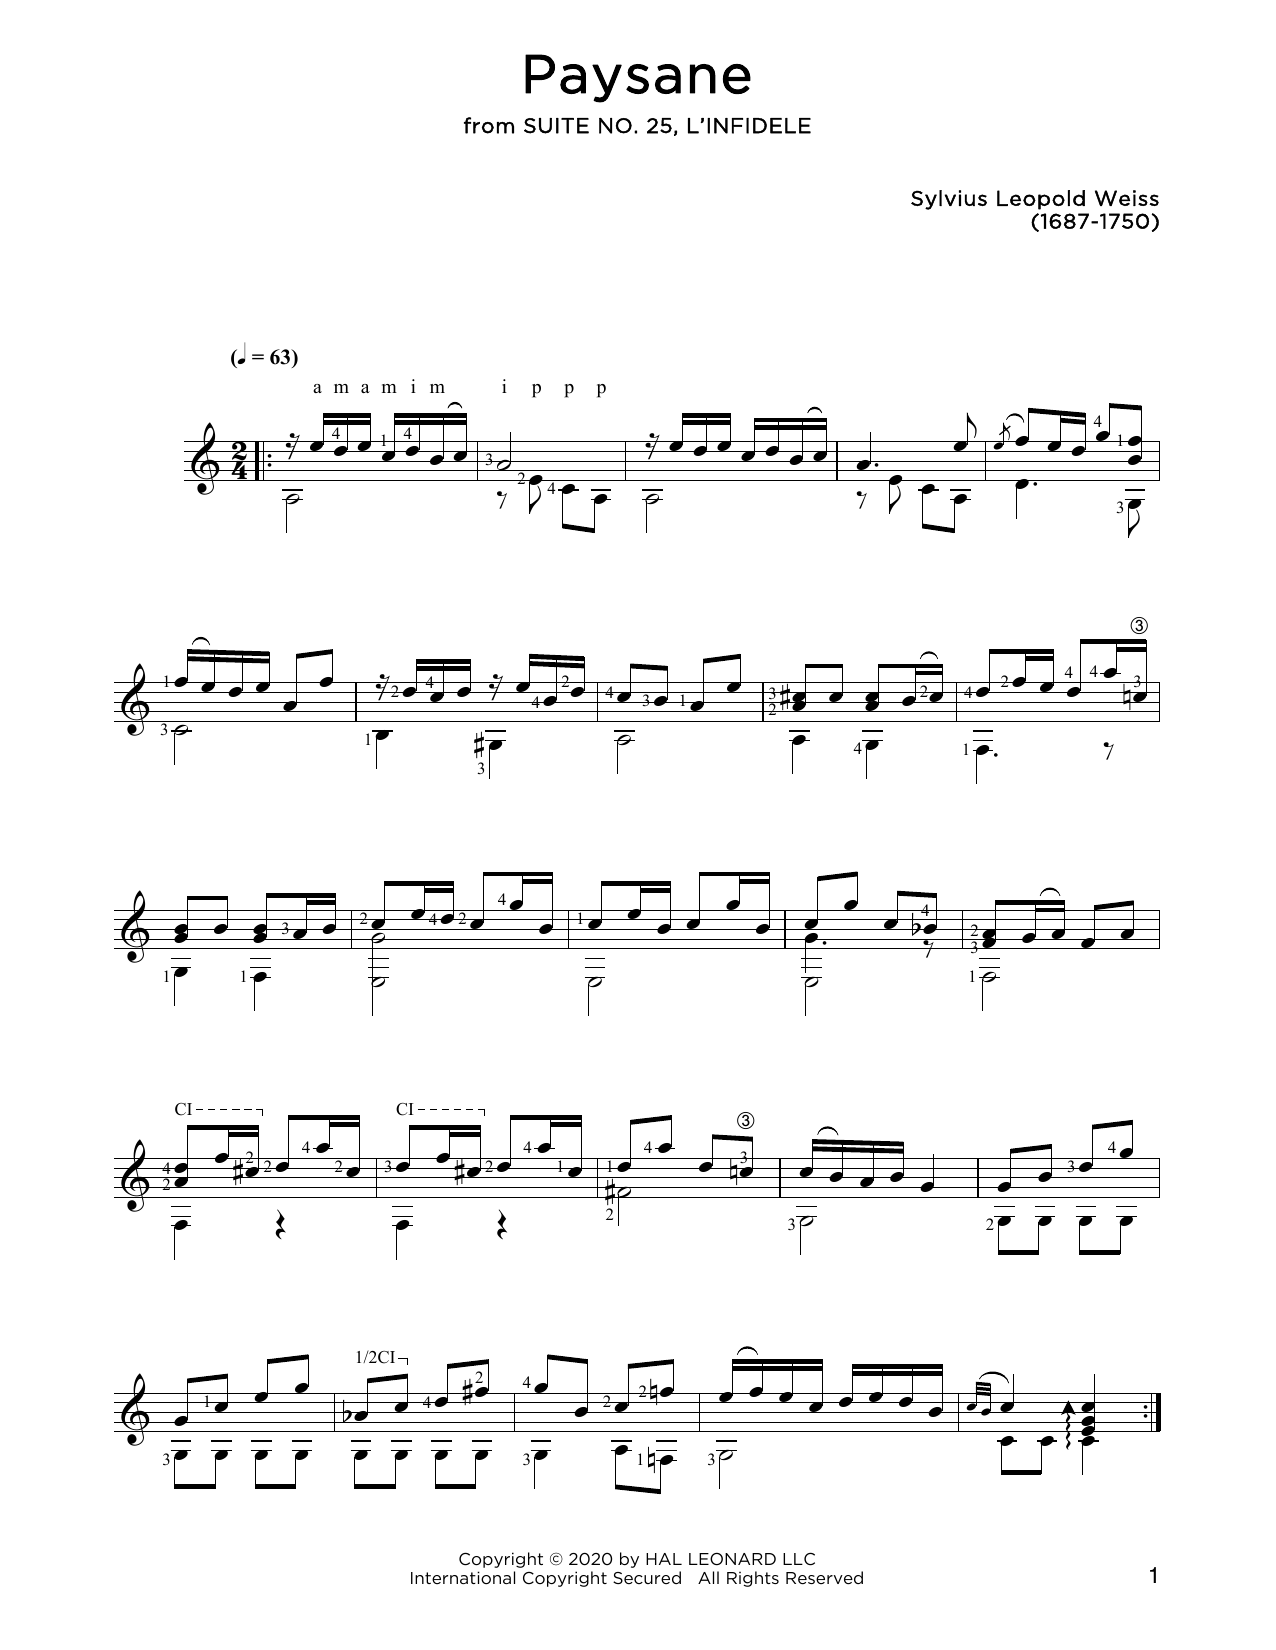 Sylvius Leopold Weiss Paysane sheet music notes and chords. Download Printable PDF.